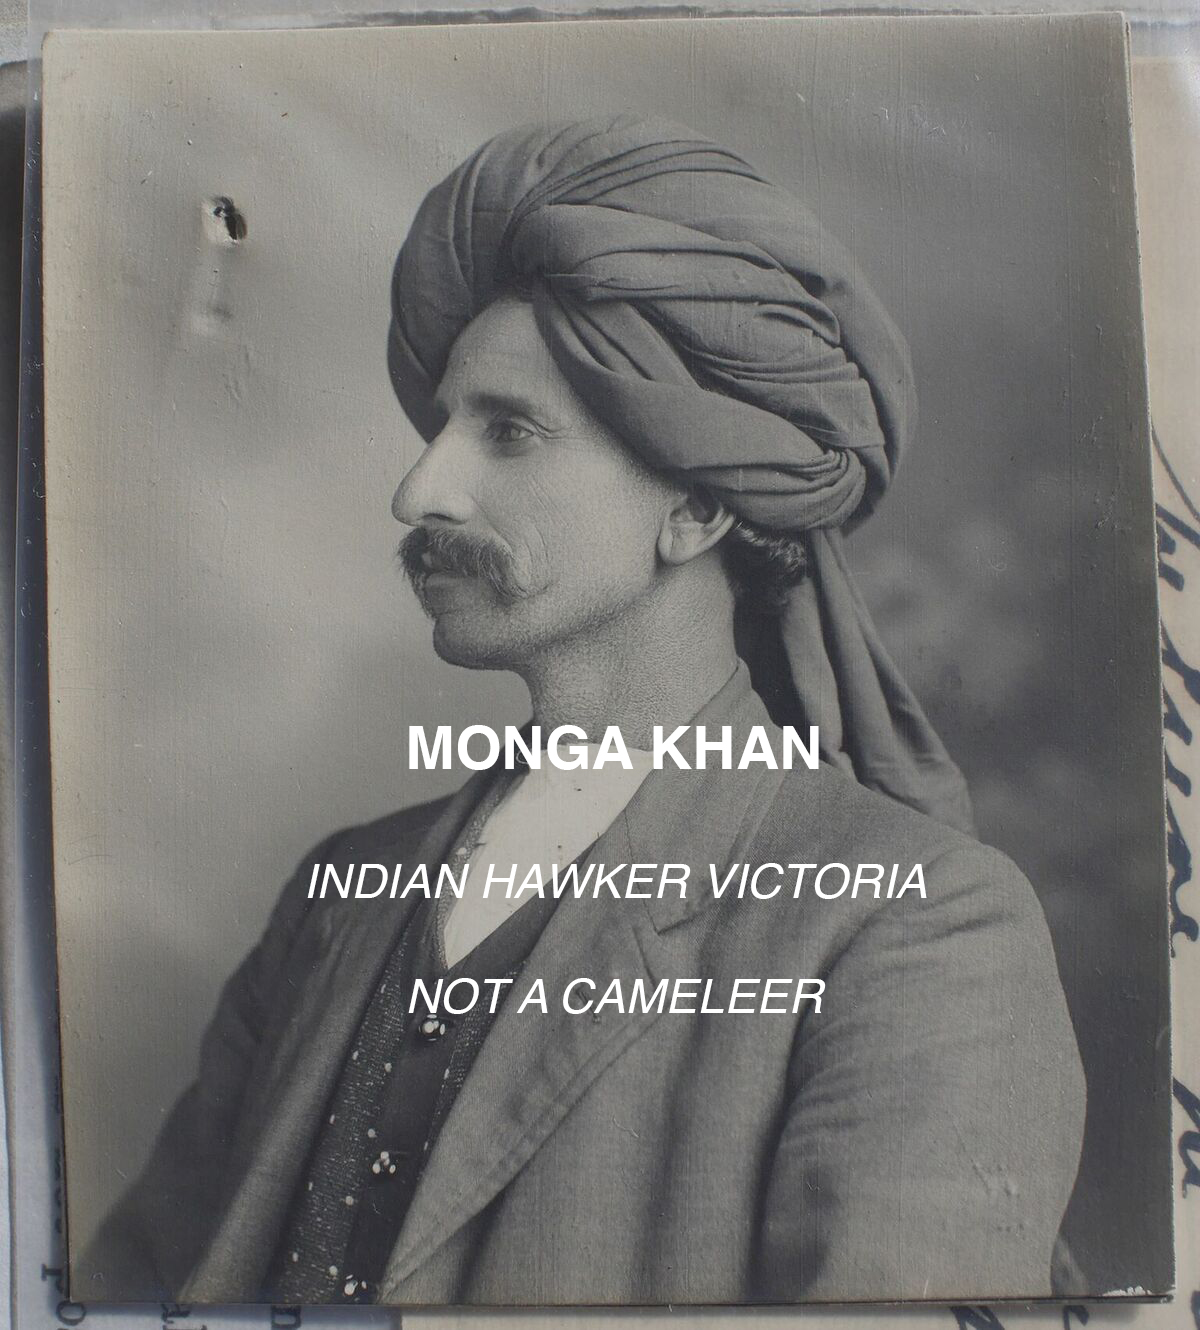 Photo Of Monga Khan Taken When He Applied For An Exemption To The Dictation Test In 1916.  Courtesy NAA